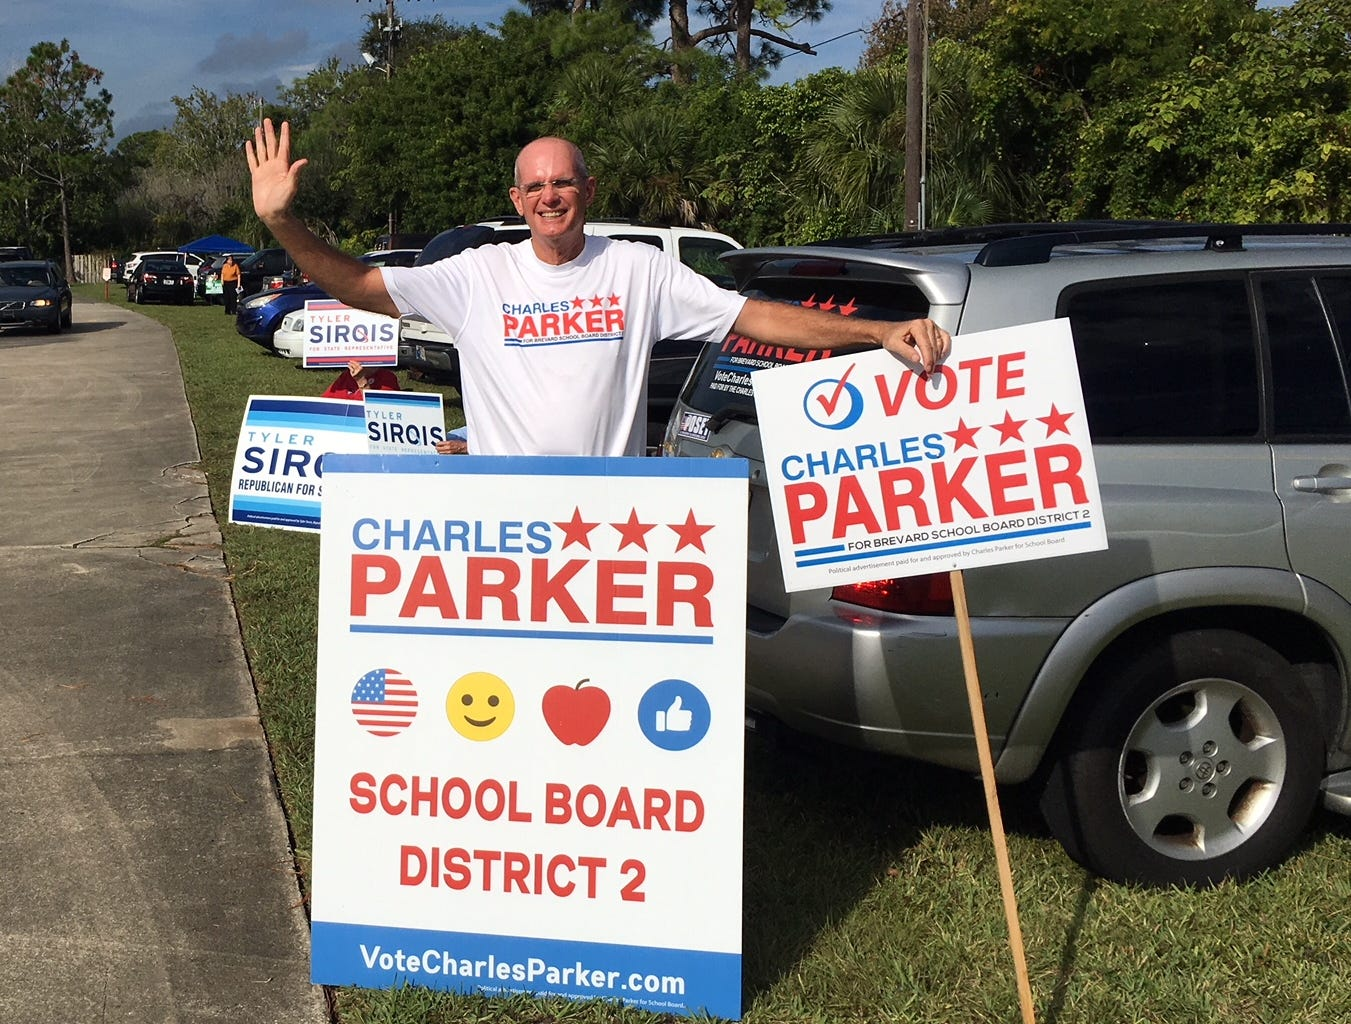 Charles Parker at Hope United Methodist Church in Rockledge.